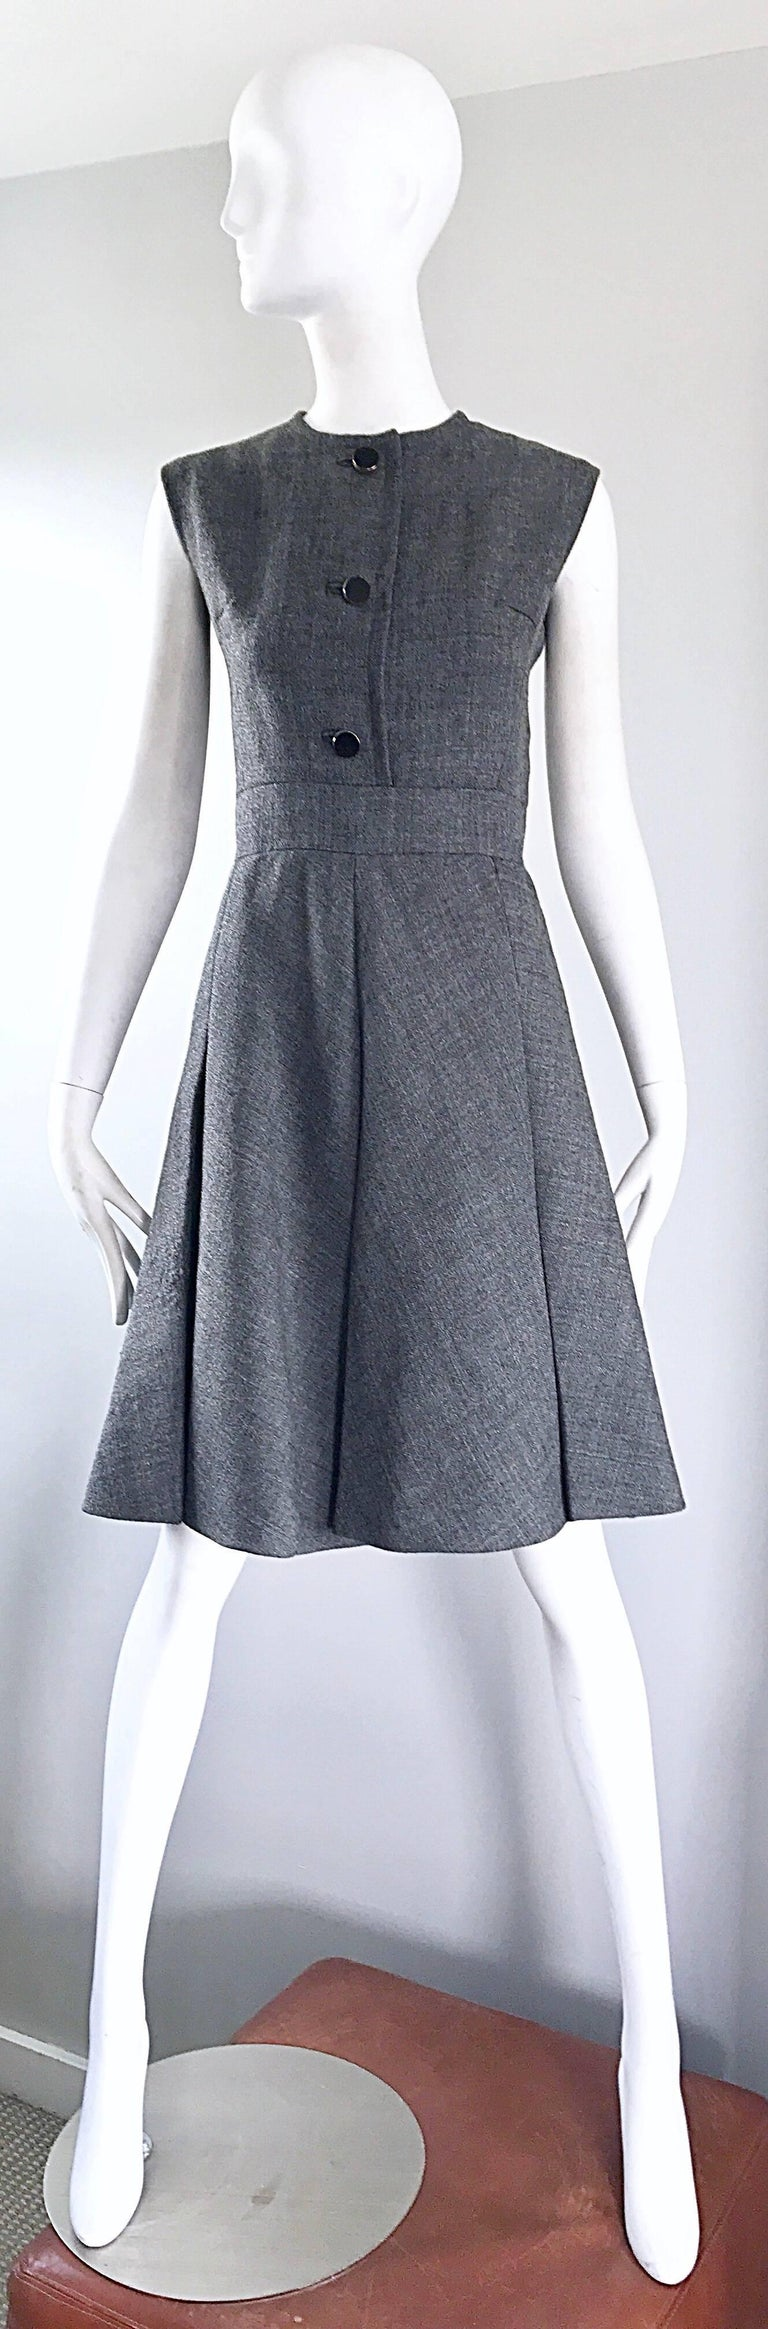 Stunning 1960s NINA RICCI HAUTE COUTURE gray wool A-Line dress and matching belted jacket suit! Jacket features the original black patent leather belt, and matching buttons. Two pockets at each side of the waist. Dress features a fitted bodice, and